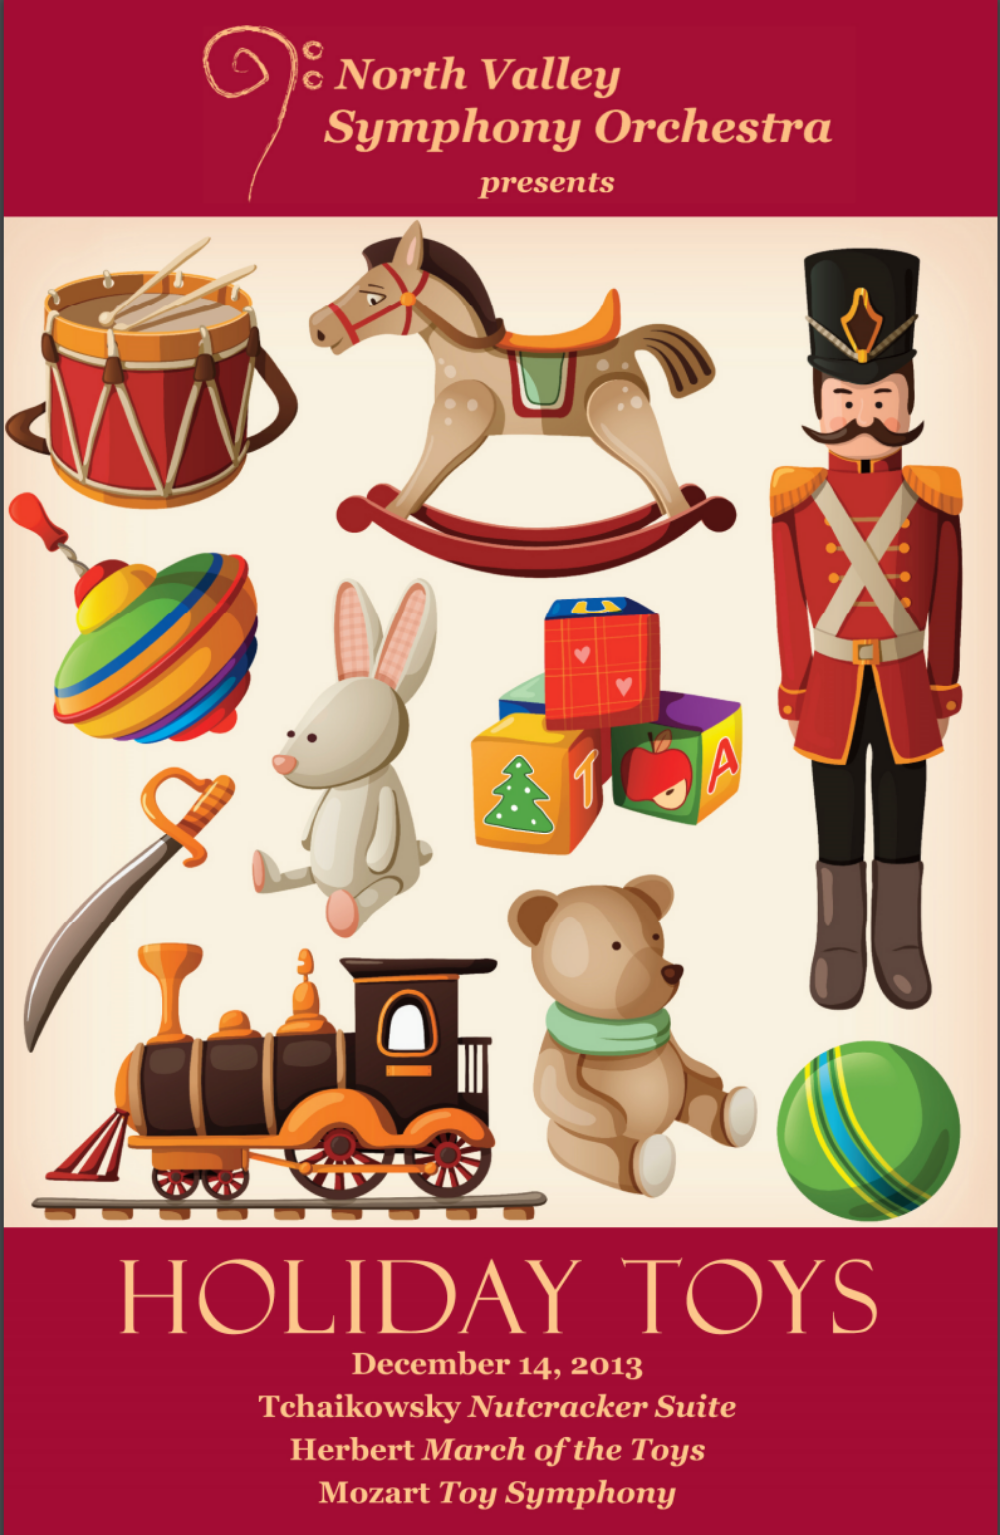 Holiday Toys - December 14, 2013